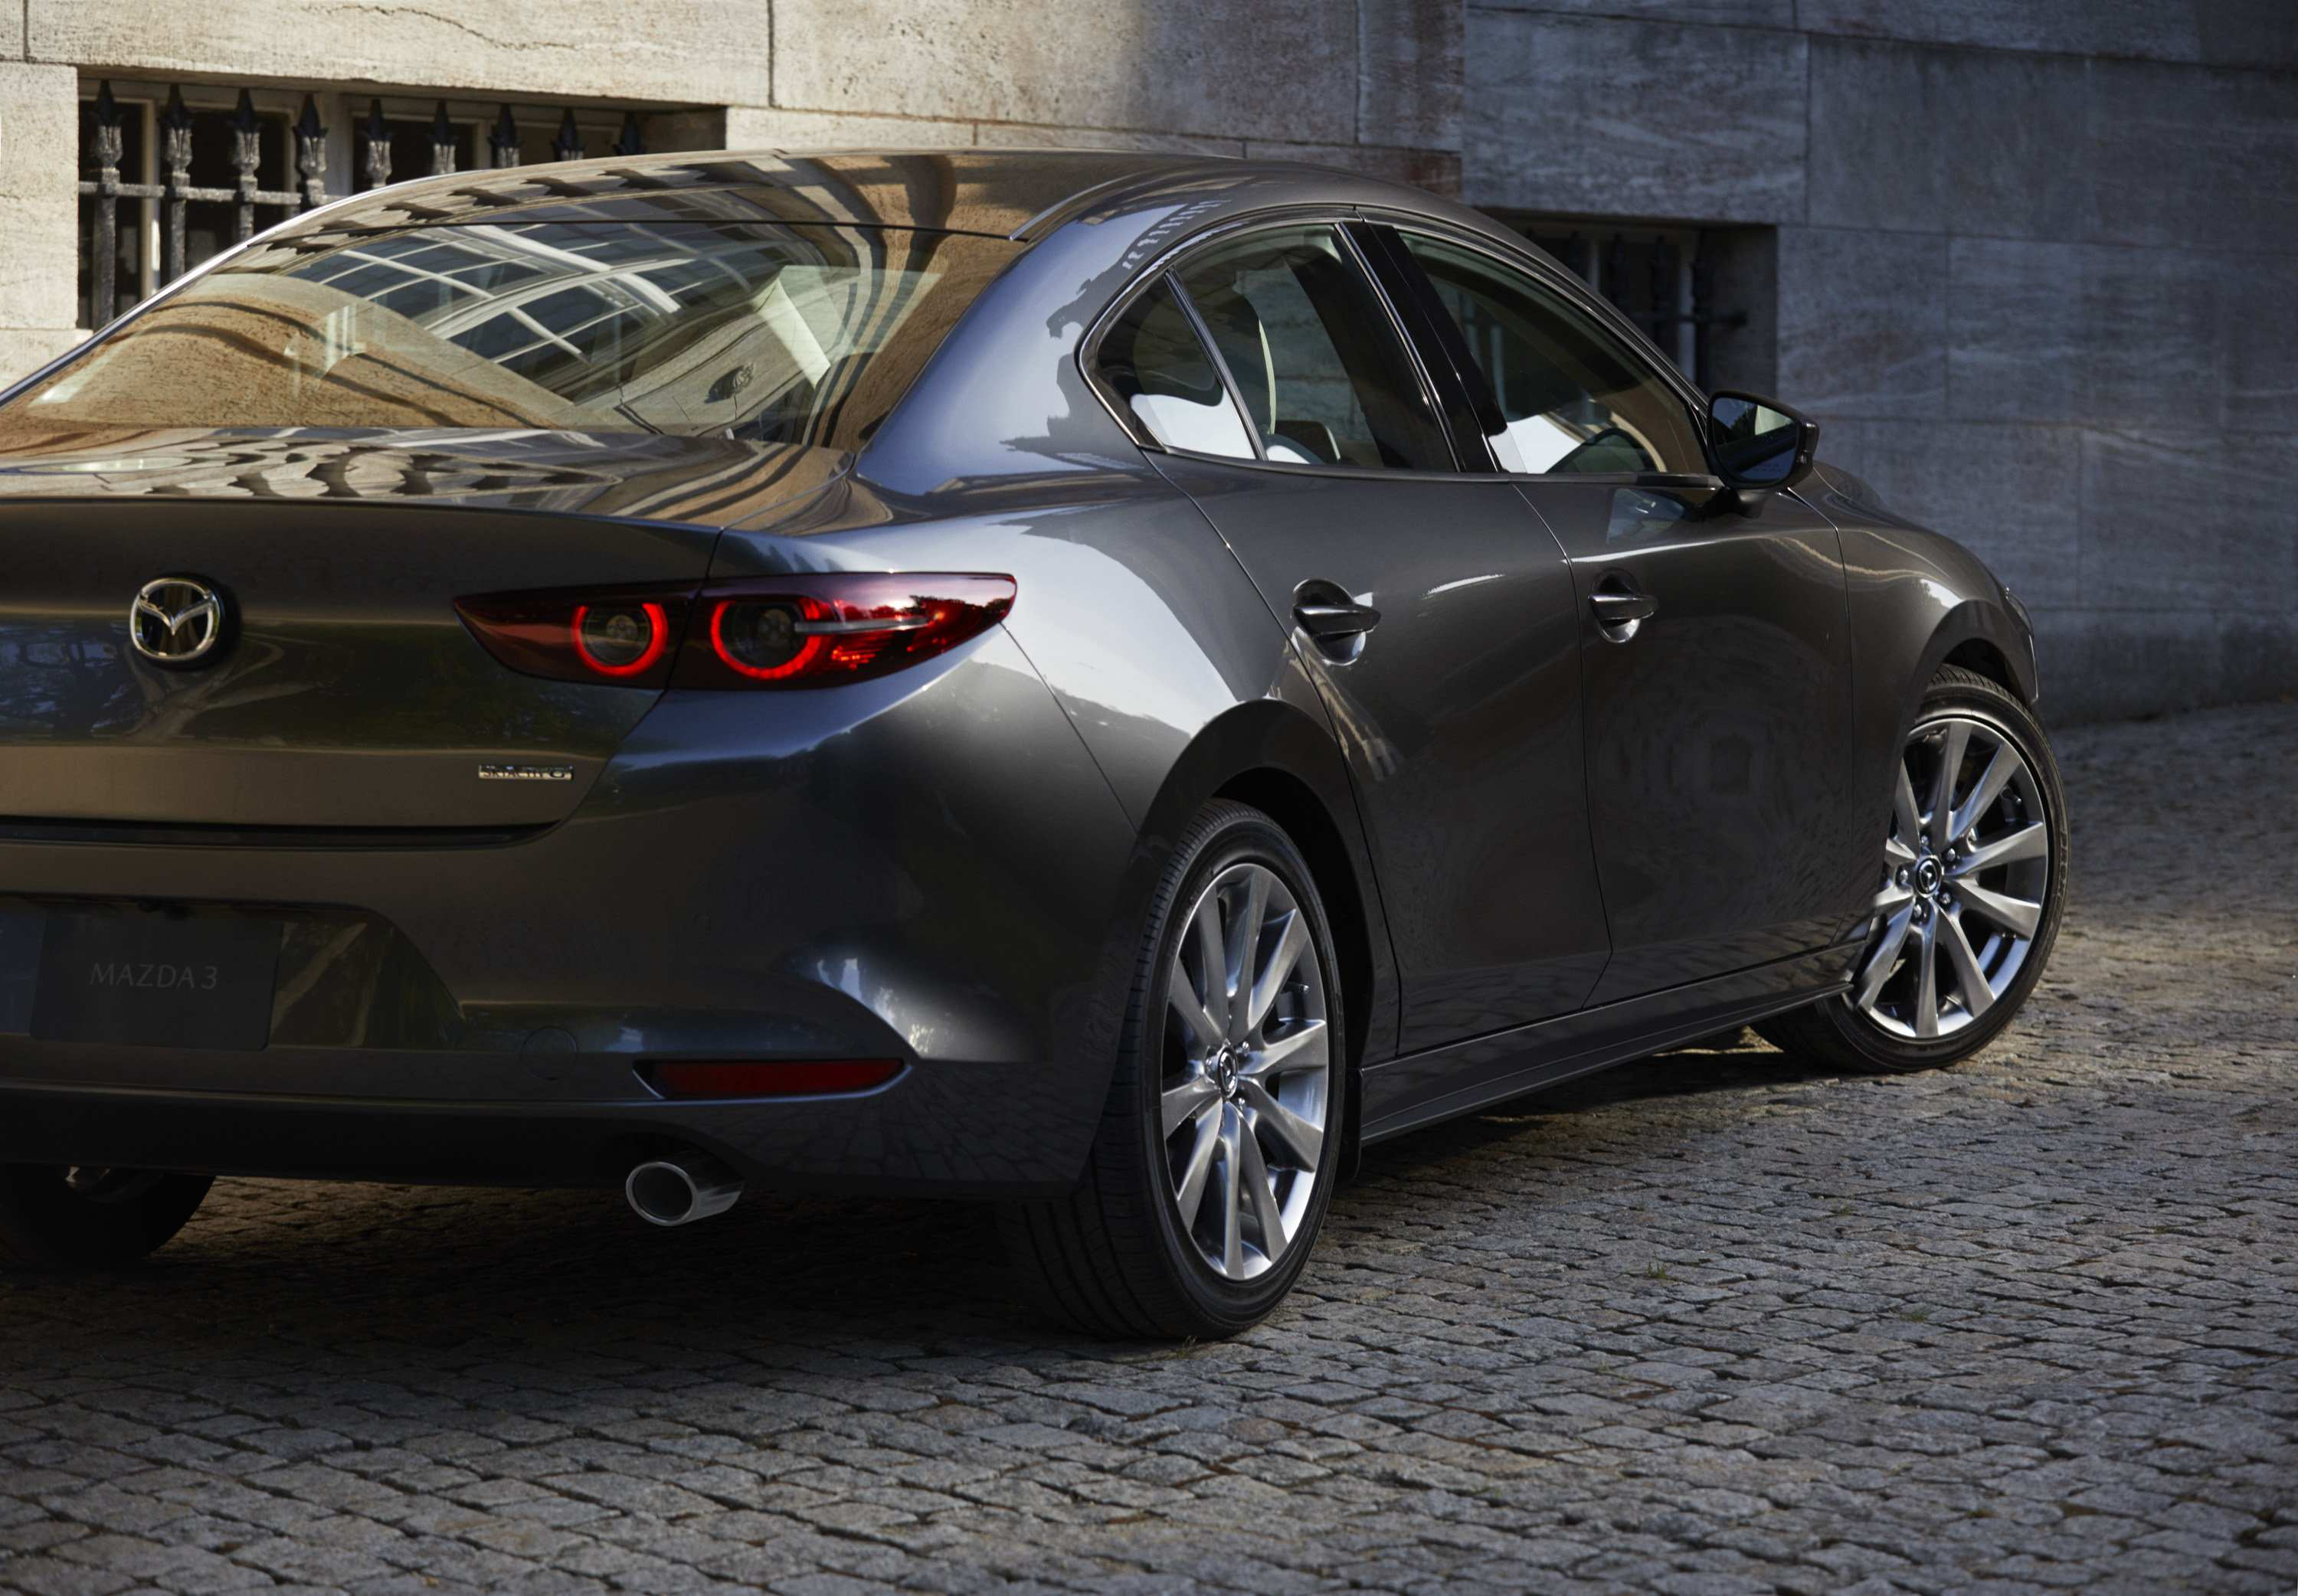 80 A 2019 Mazdaspeed 3 Images